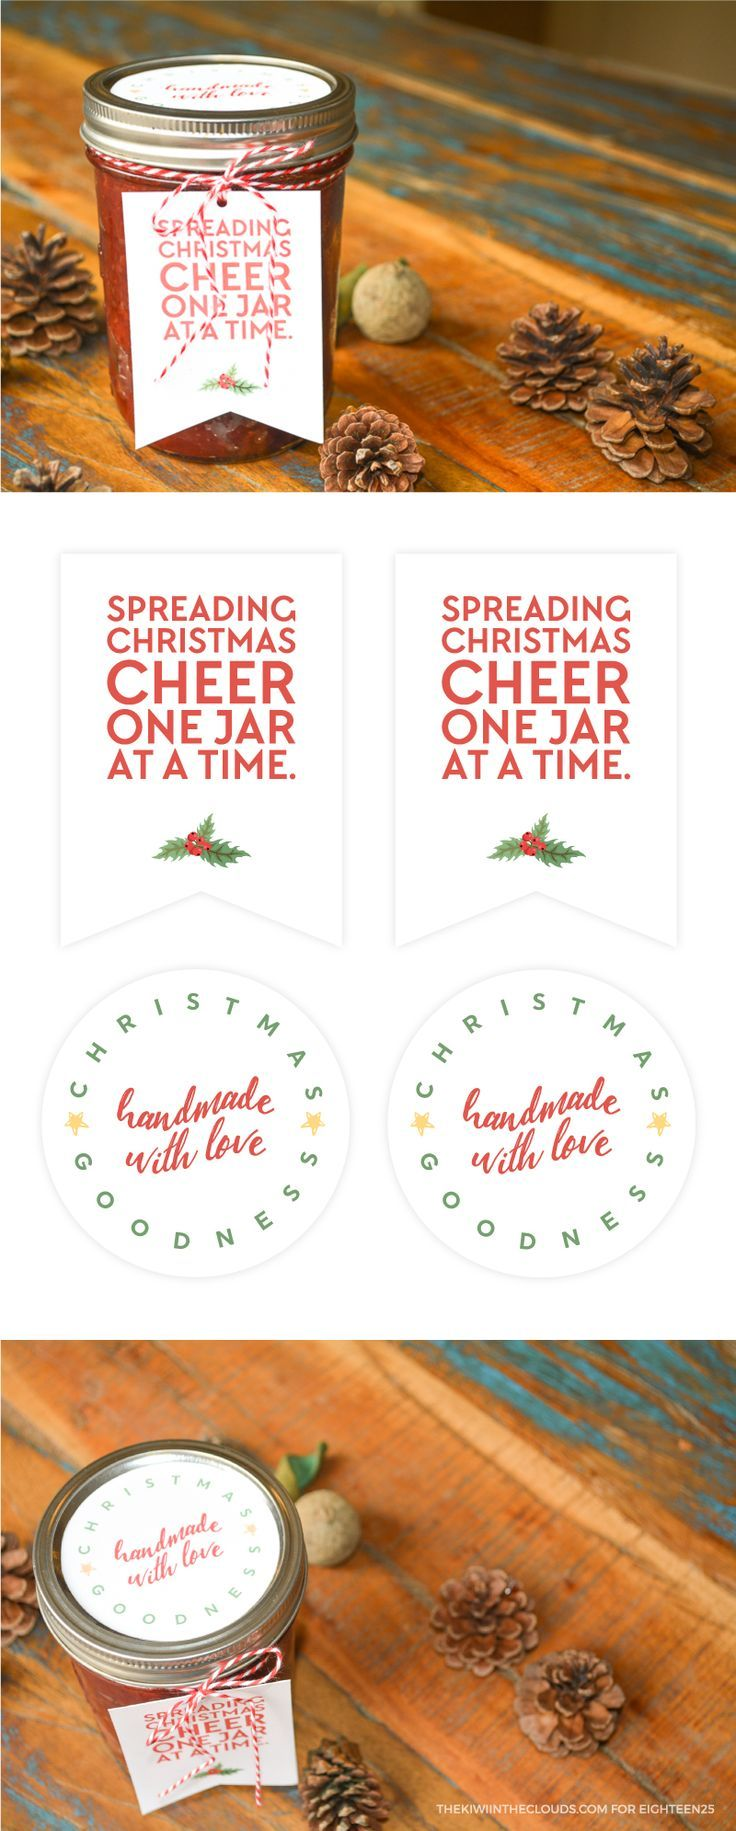 DIY Gifts Ideas : Spreading Christmas Cheer One Jar At A Time ...